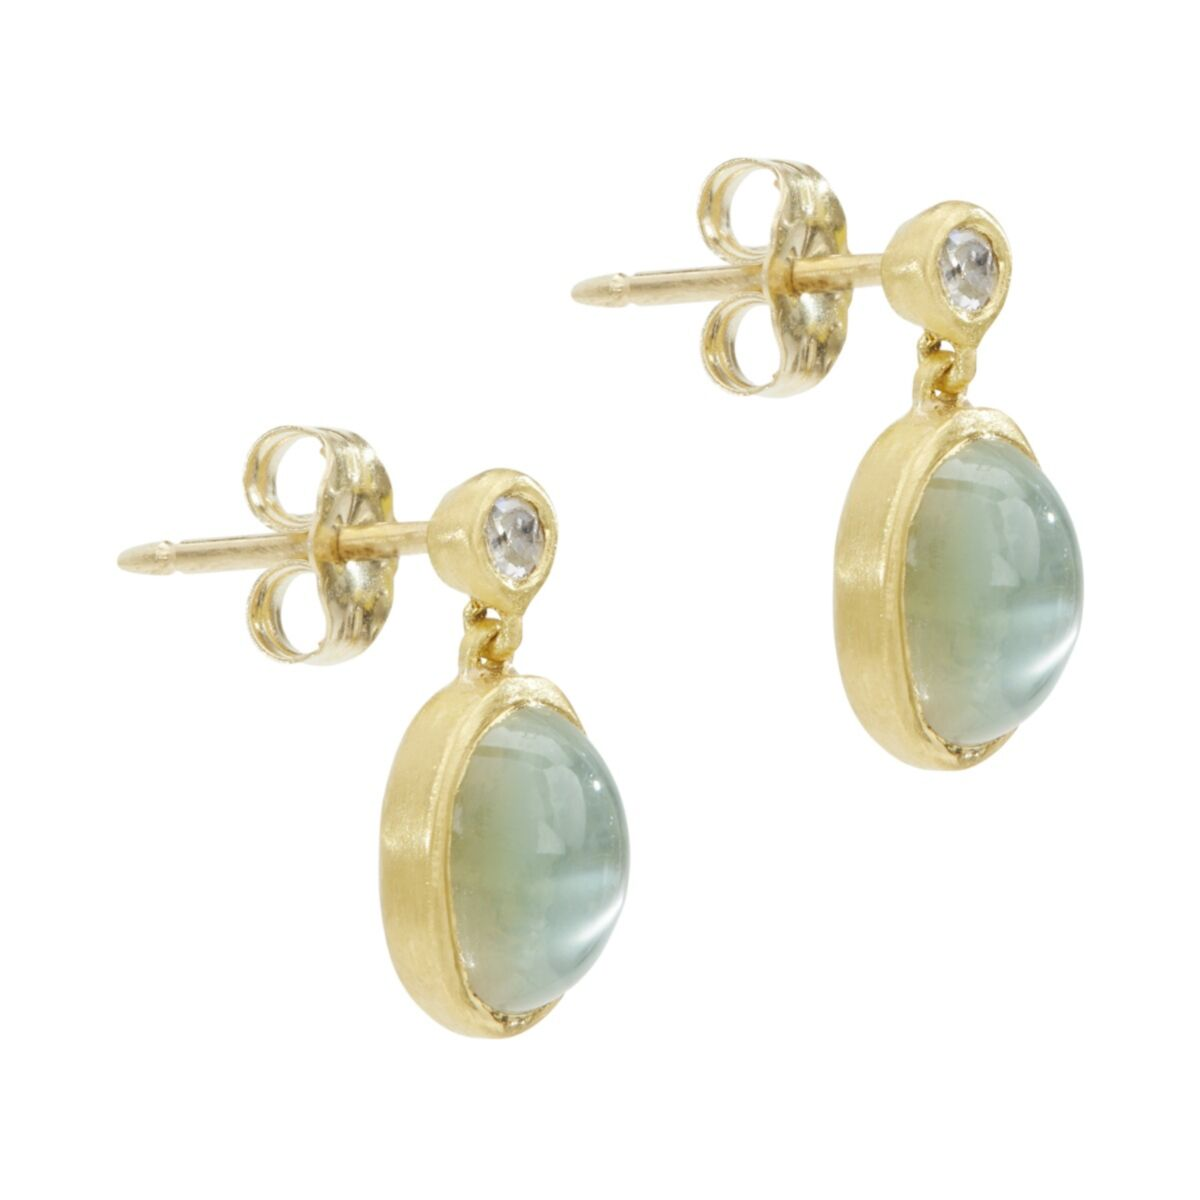 Moonlit Mango Moonstone Earrings image